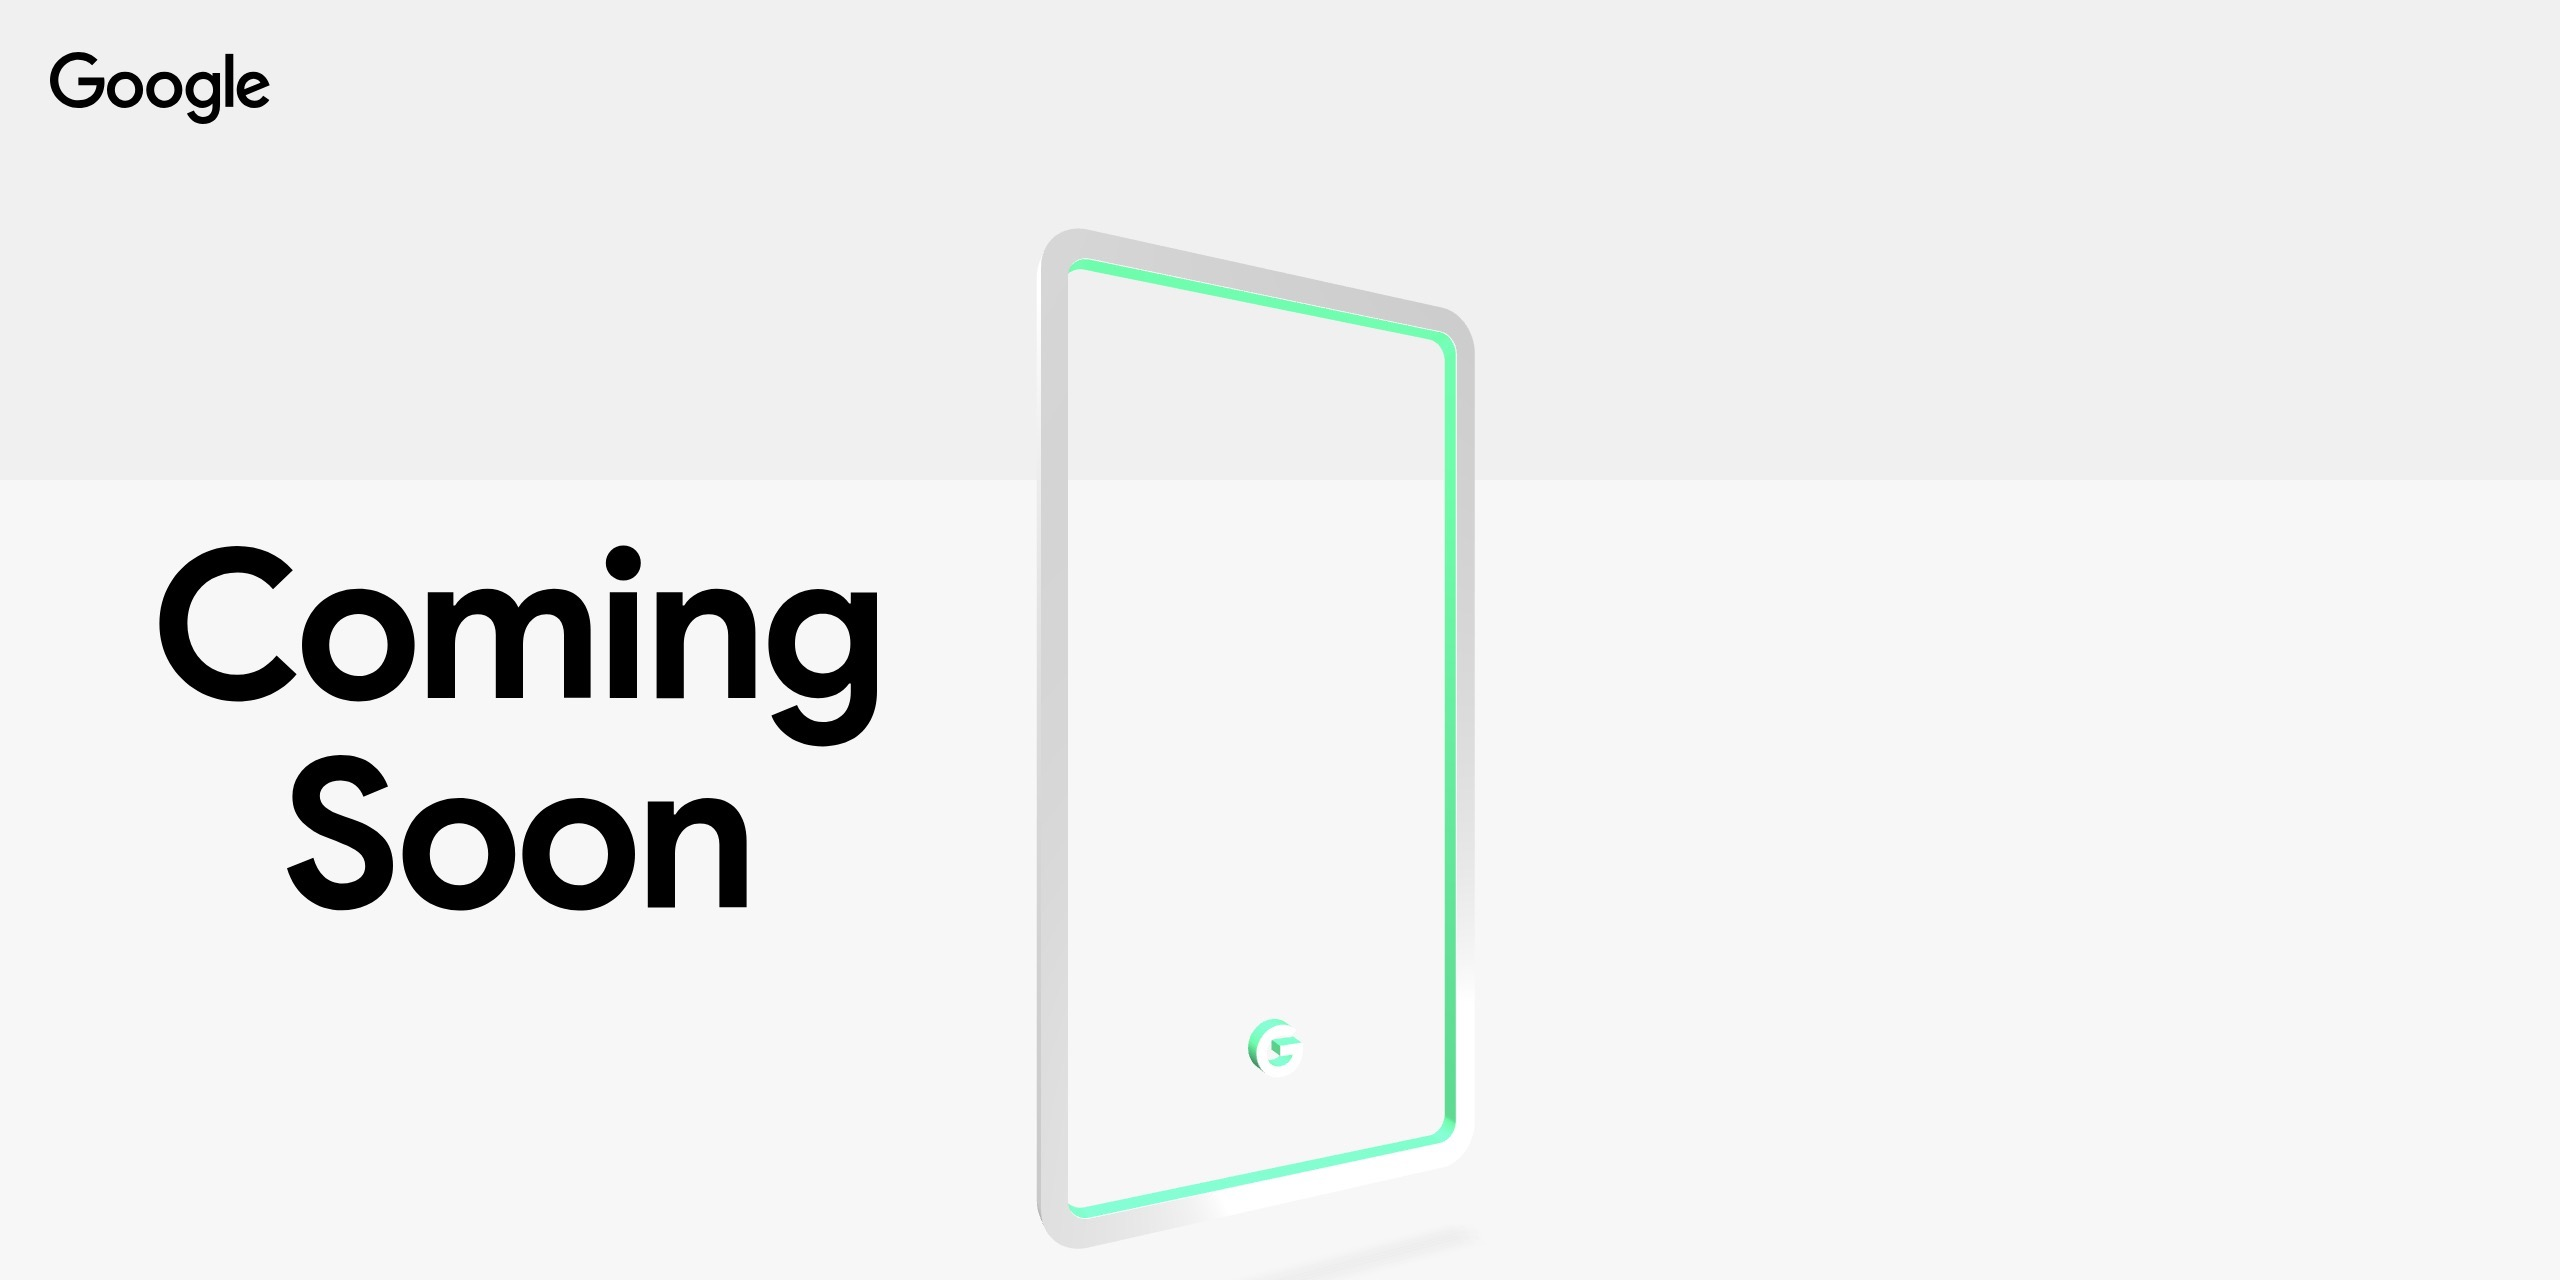 google hints at pixel 3 and pixel 3 xl colors in new coming soon teaser